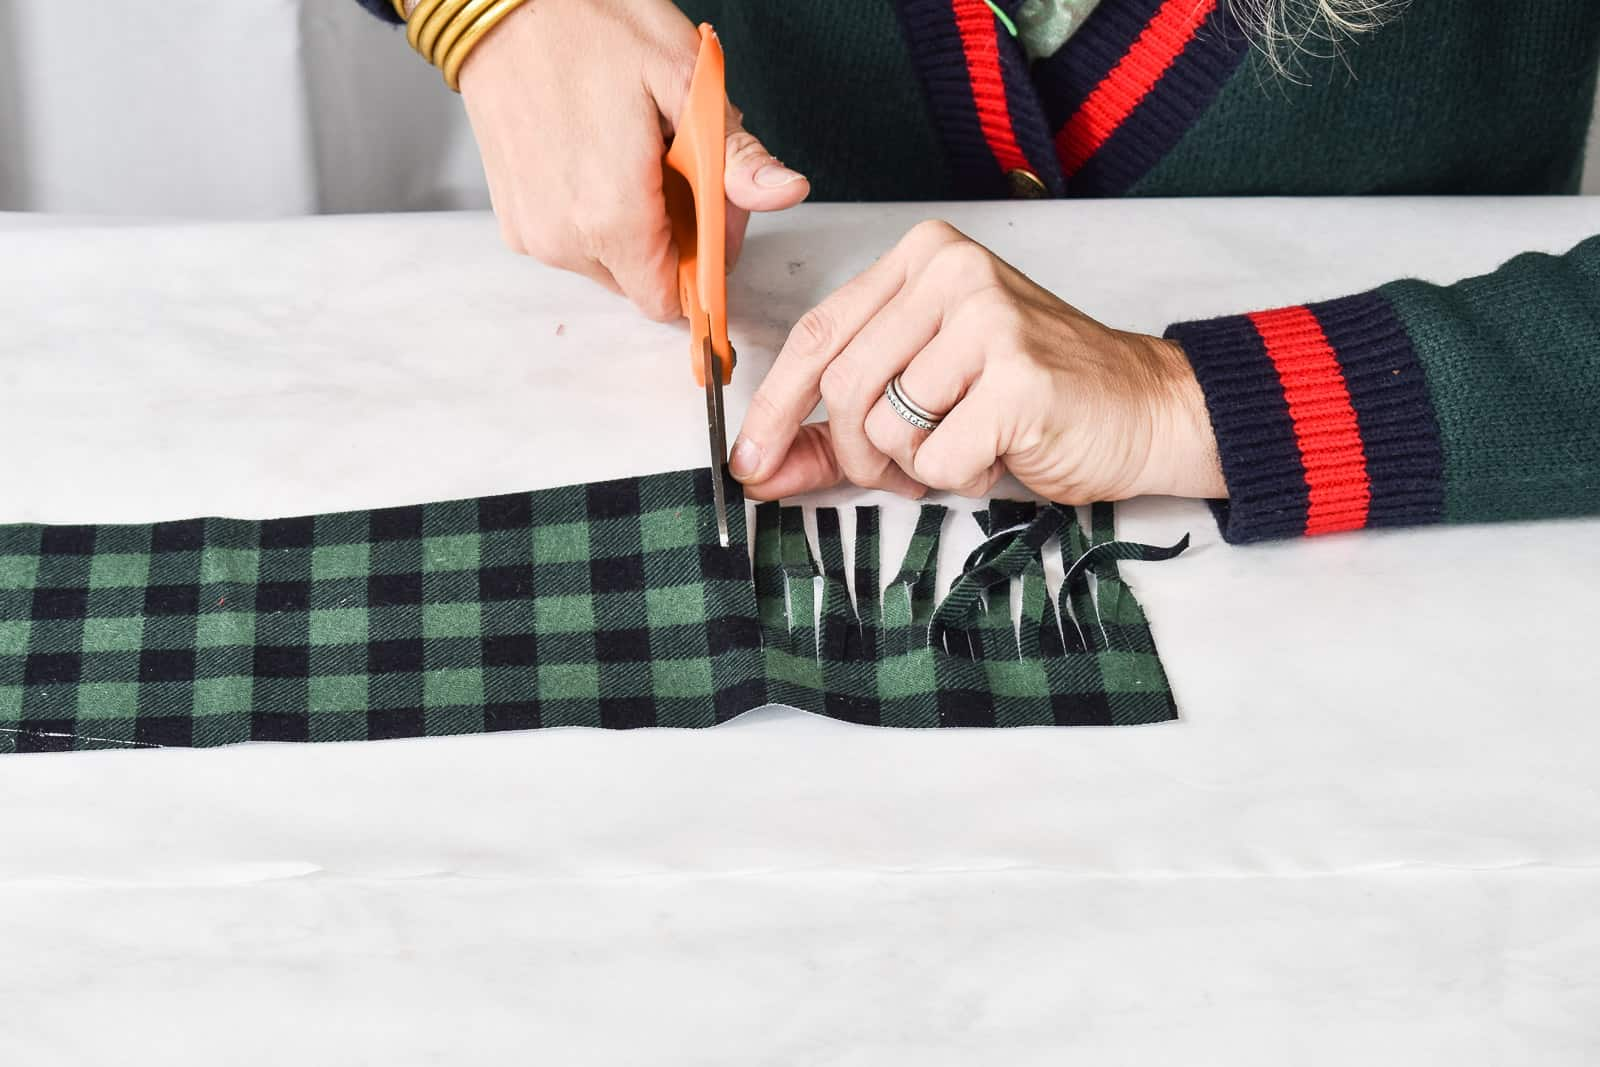 cut the fringe into the plaid fabric